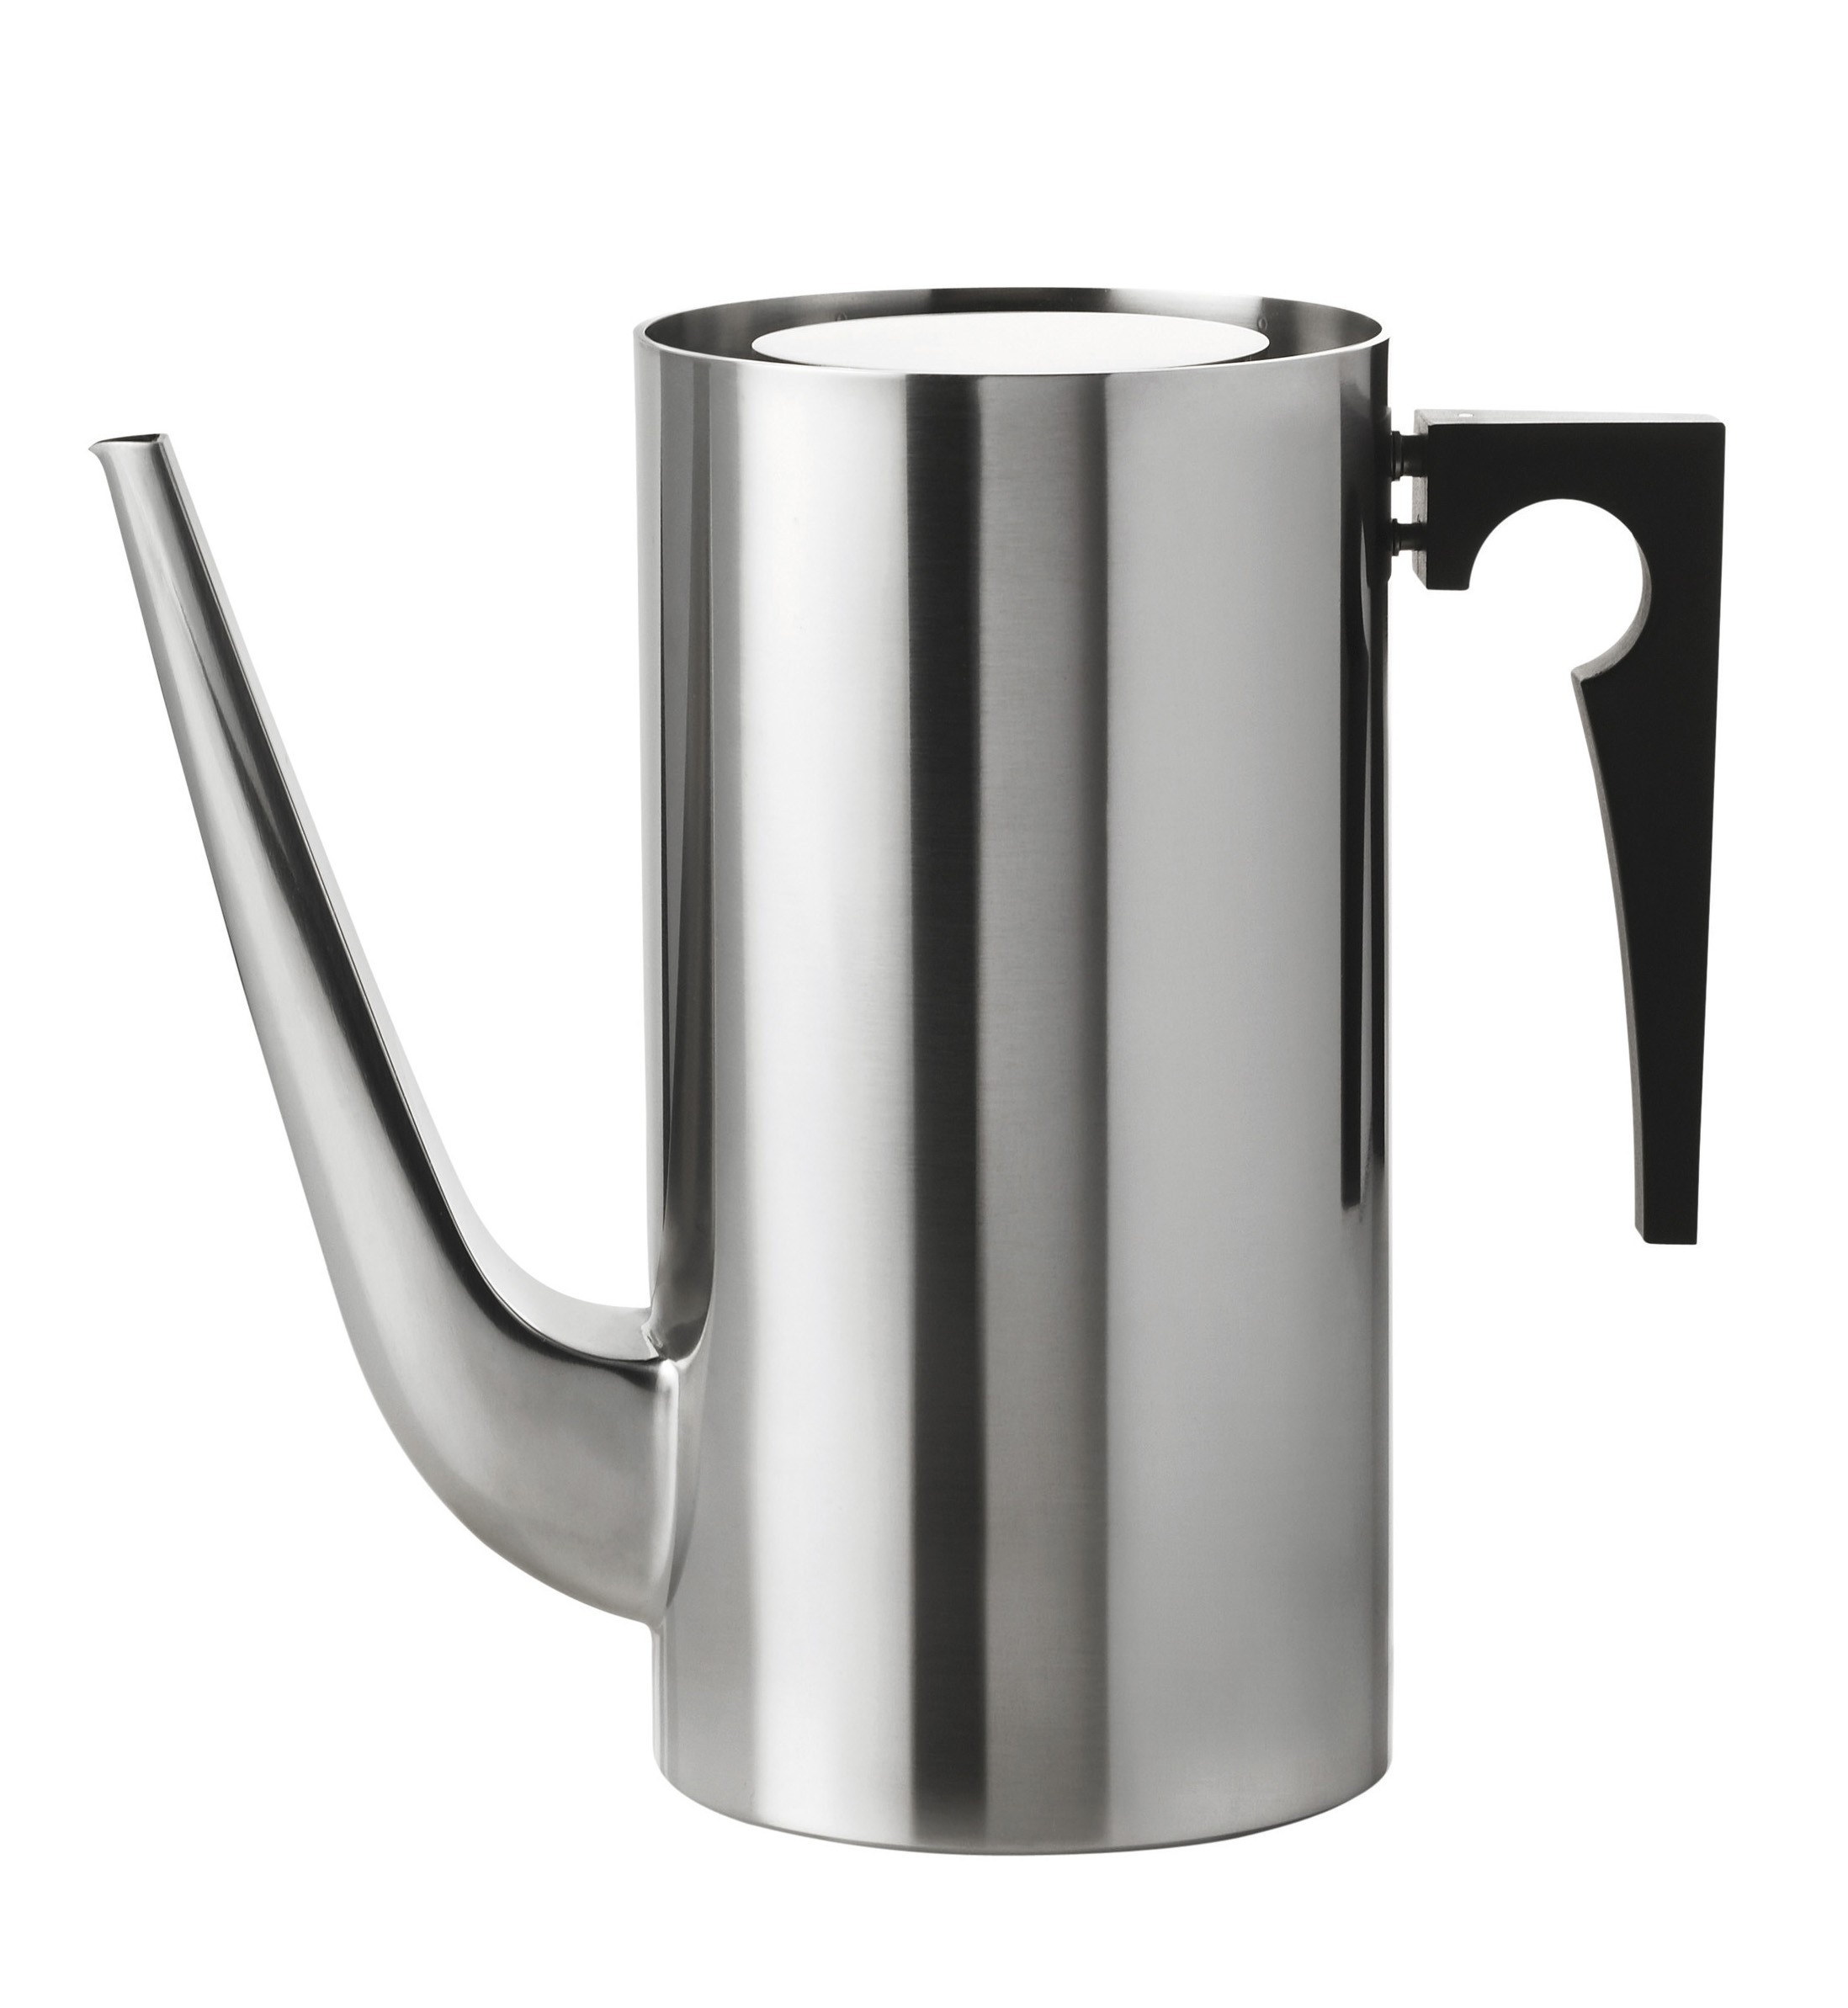 Stelton AJ Coffee Pot 50.7 oz